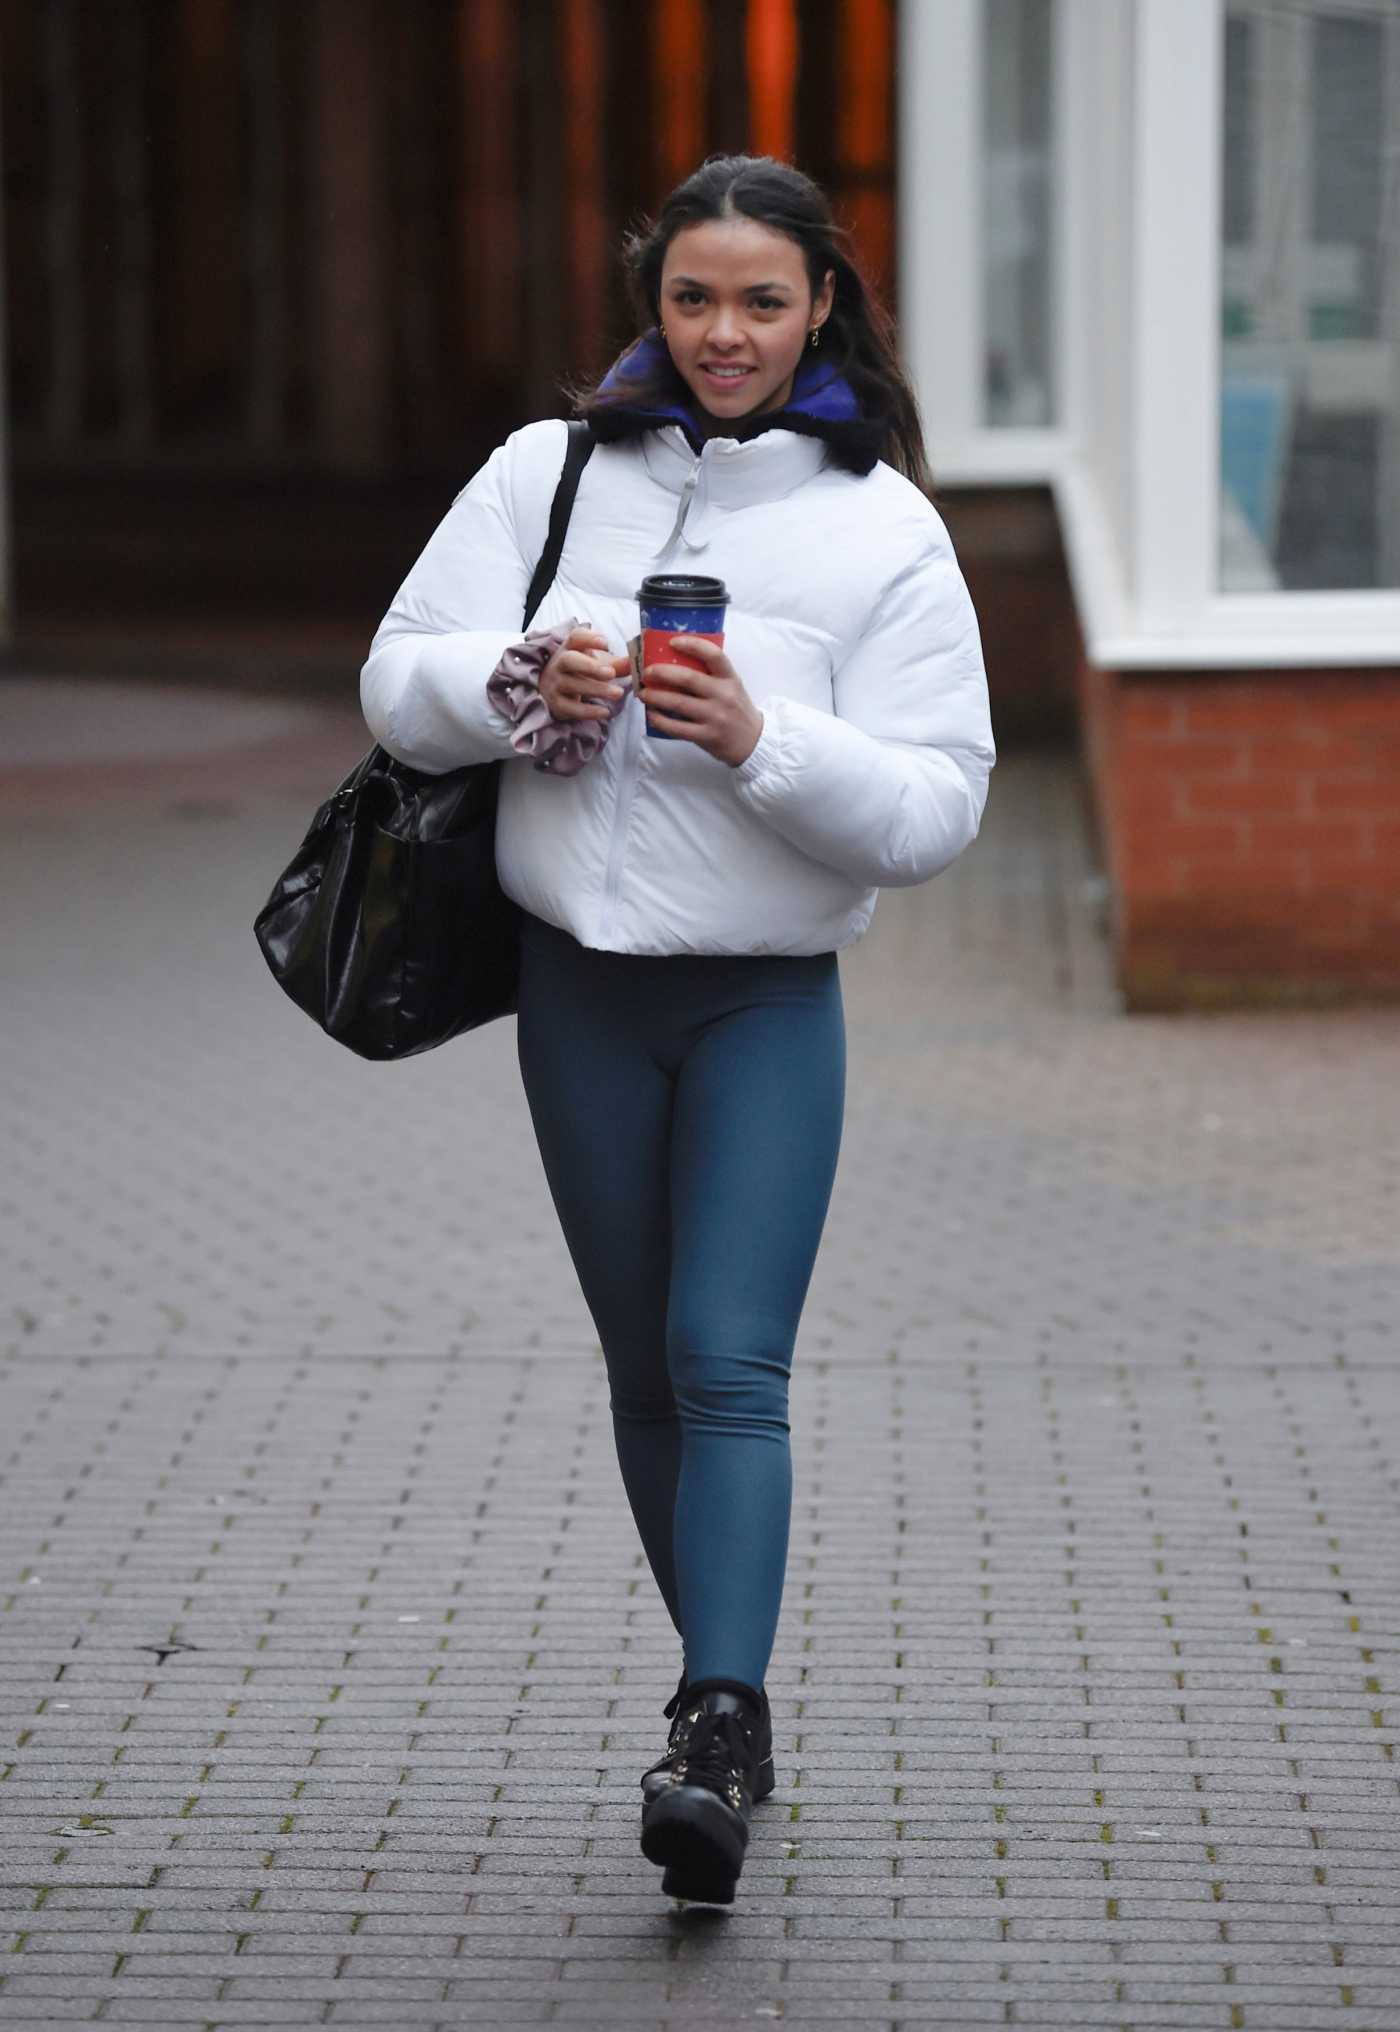 Vanessa Bauer in a White Puffer Jacket Arrives at Dancing On Ice Practice in Blackpool 01/08/2021